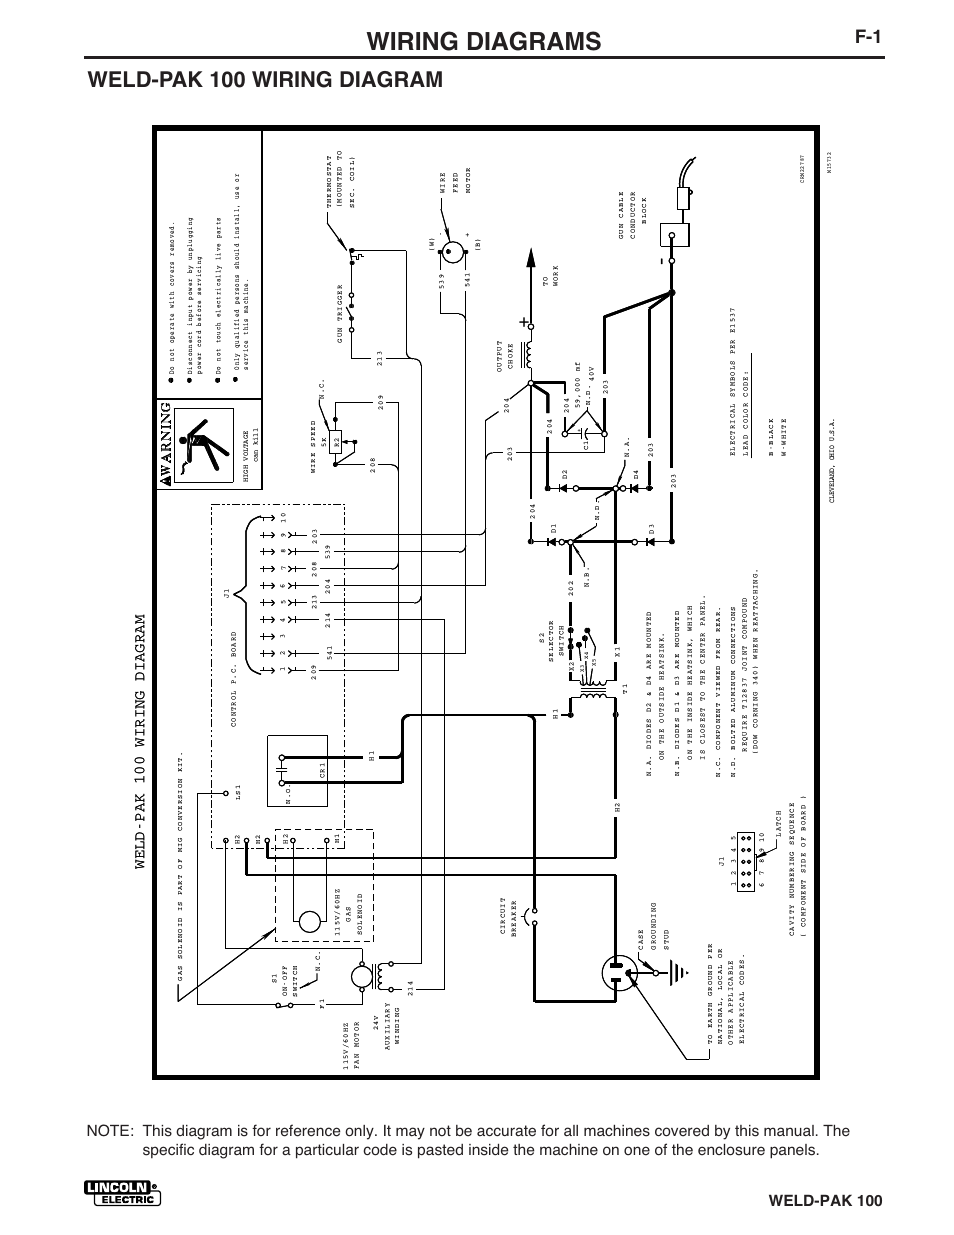 Wiring diagrams, Weld-pak 100 wiring diagram, Weld-pak 100 | Lincoln  Electric WELD-PACK 100 PLUS IM546 User Manual | Page 45 / 60